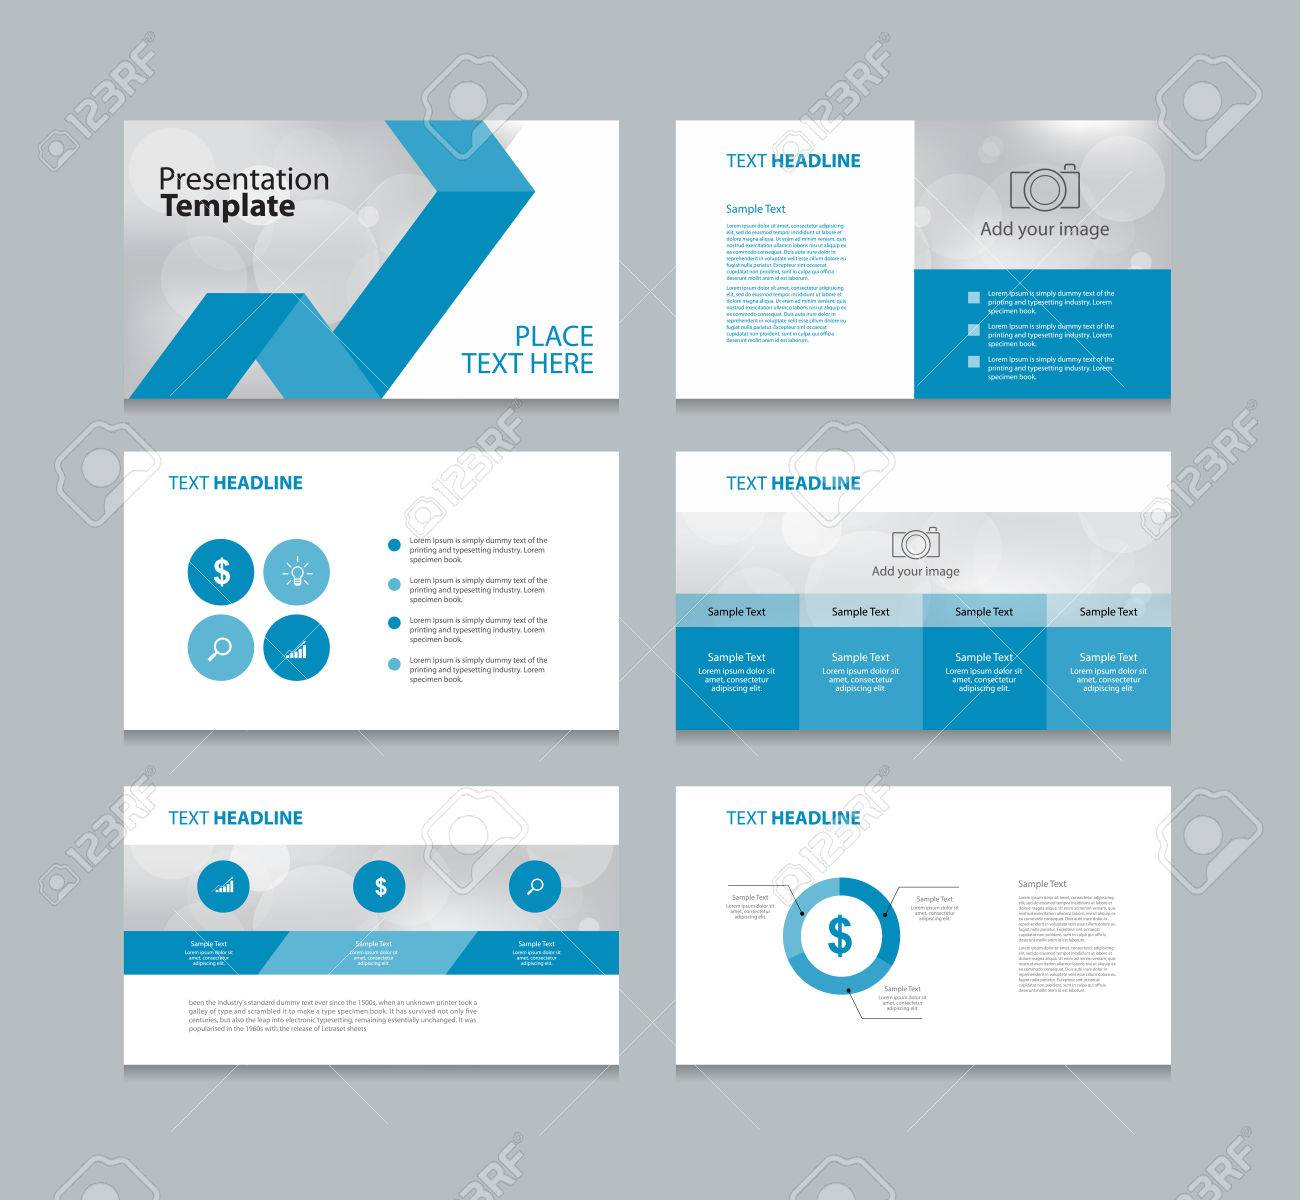 abstract page layout design template for presentation and brochure